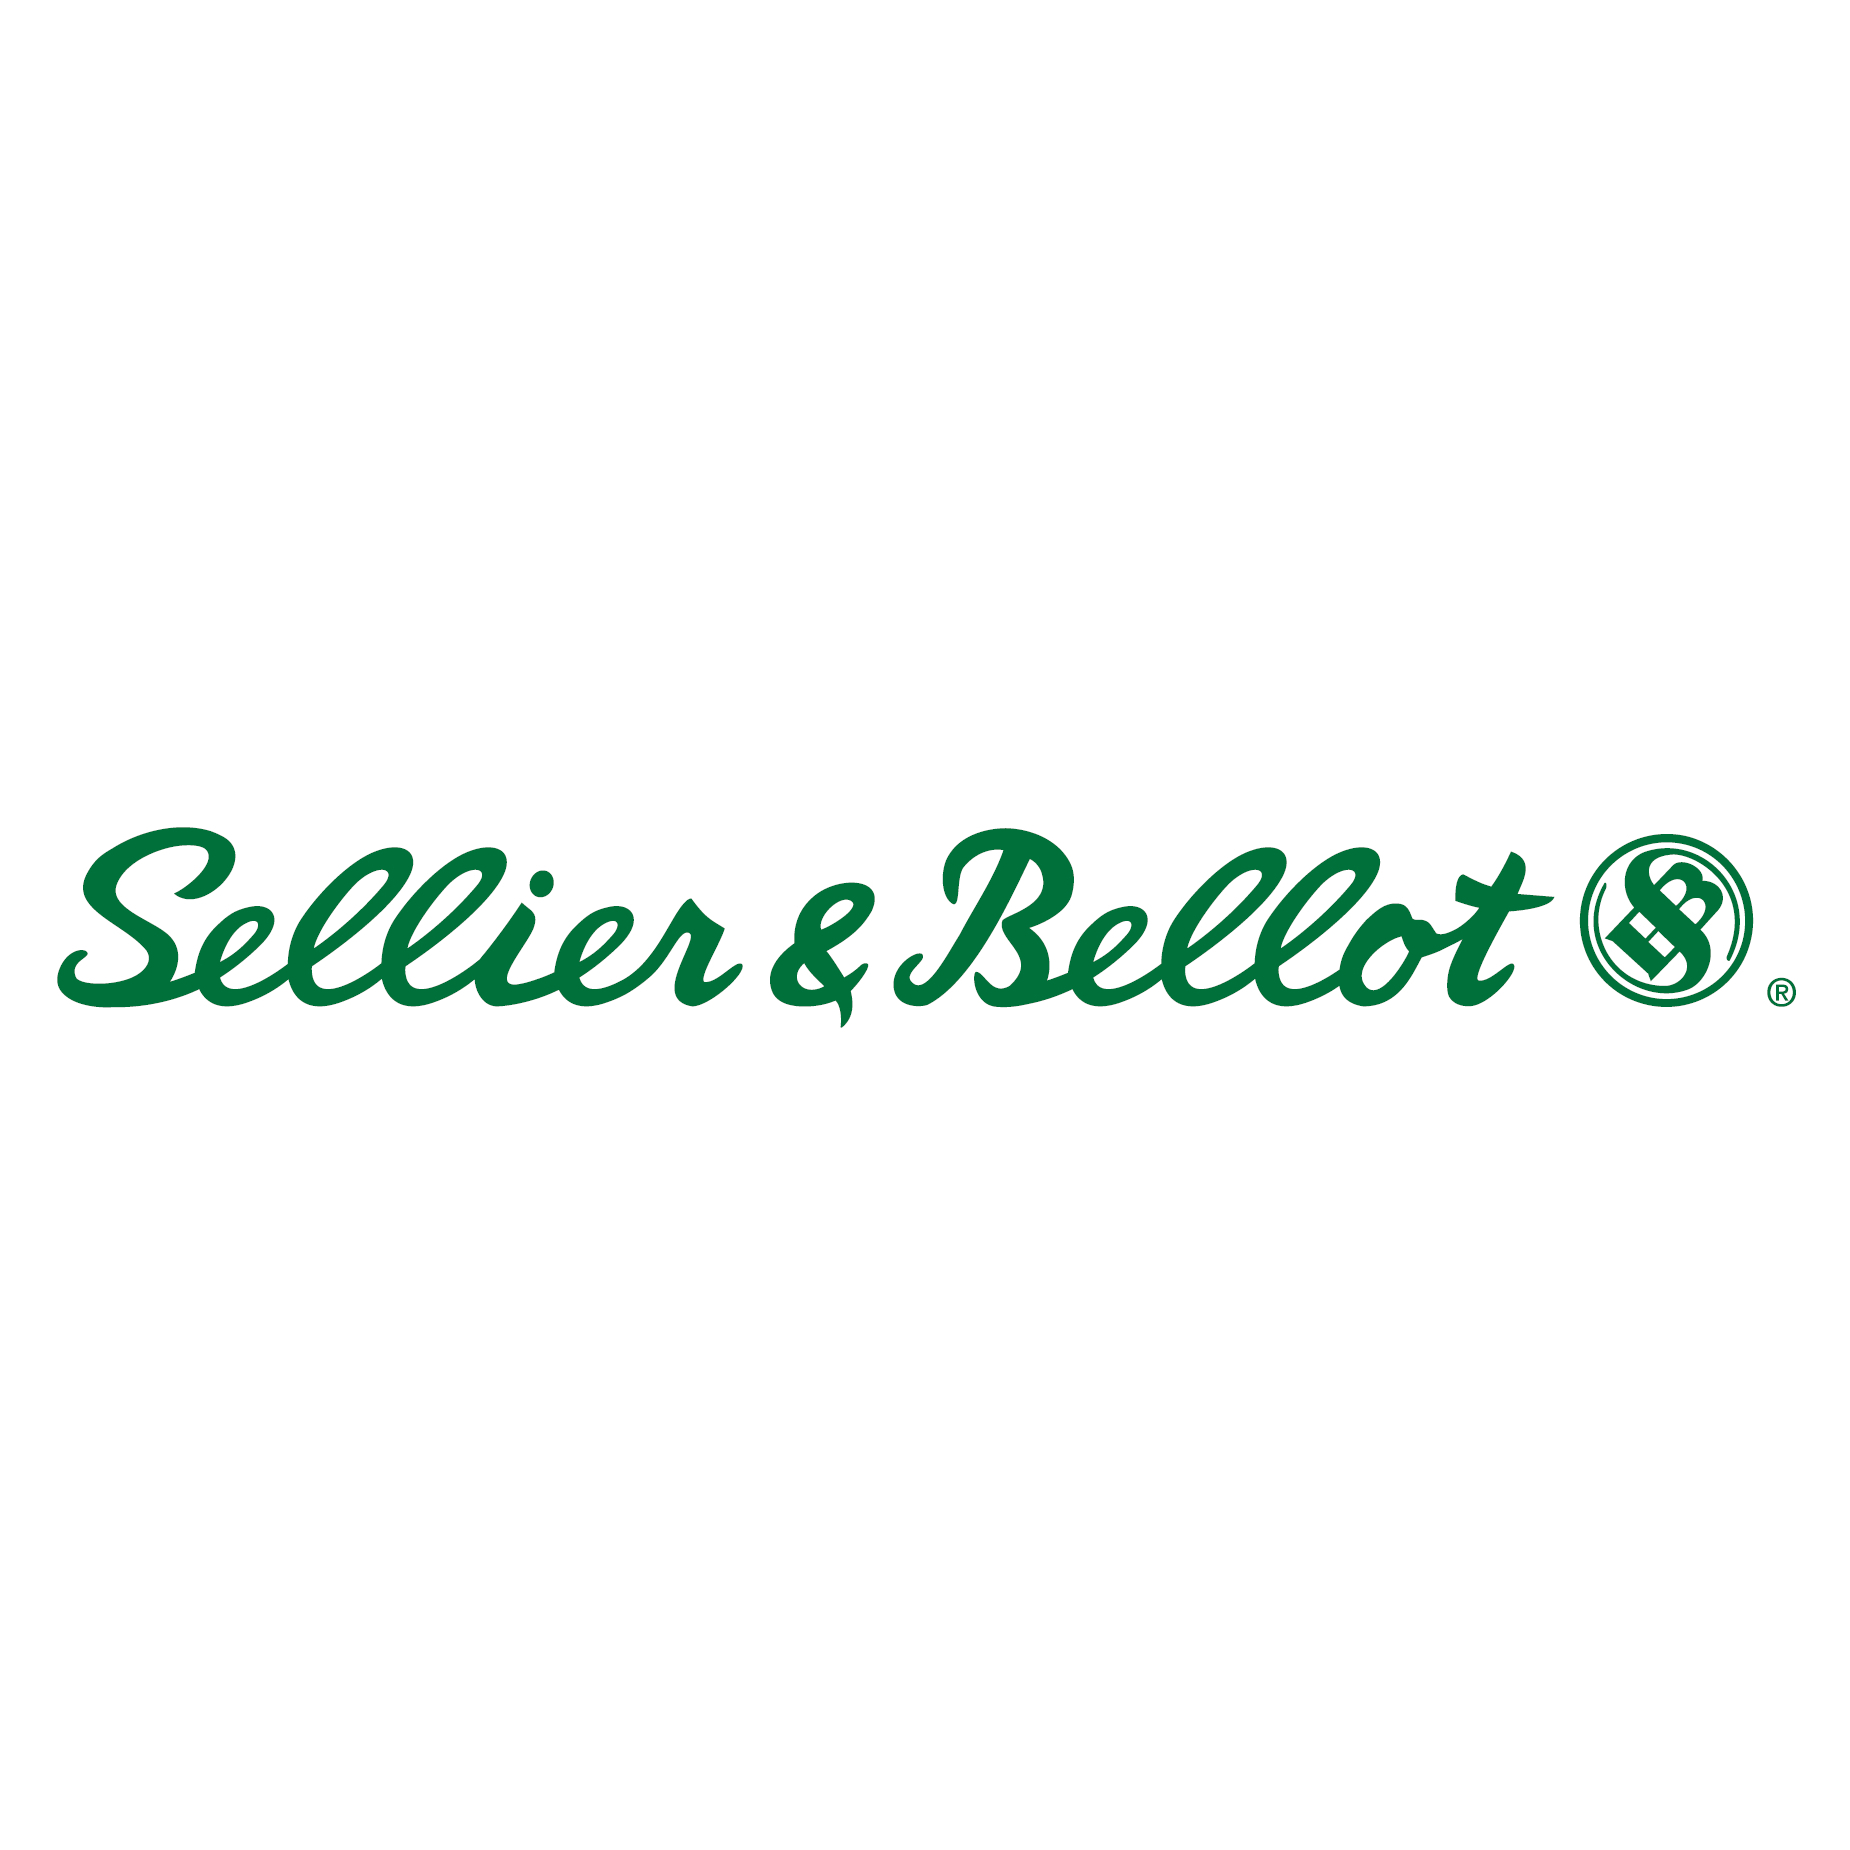 Náboj Sellier & Bellot 12/70 Buck Shot, 8,43 mm, 32g (9 broků)